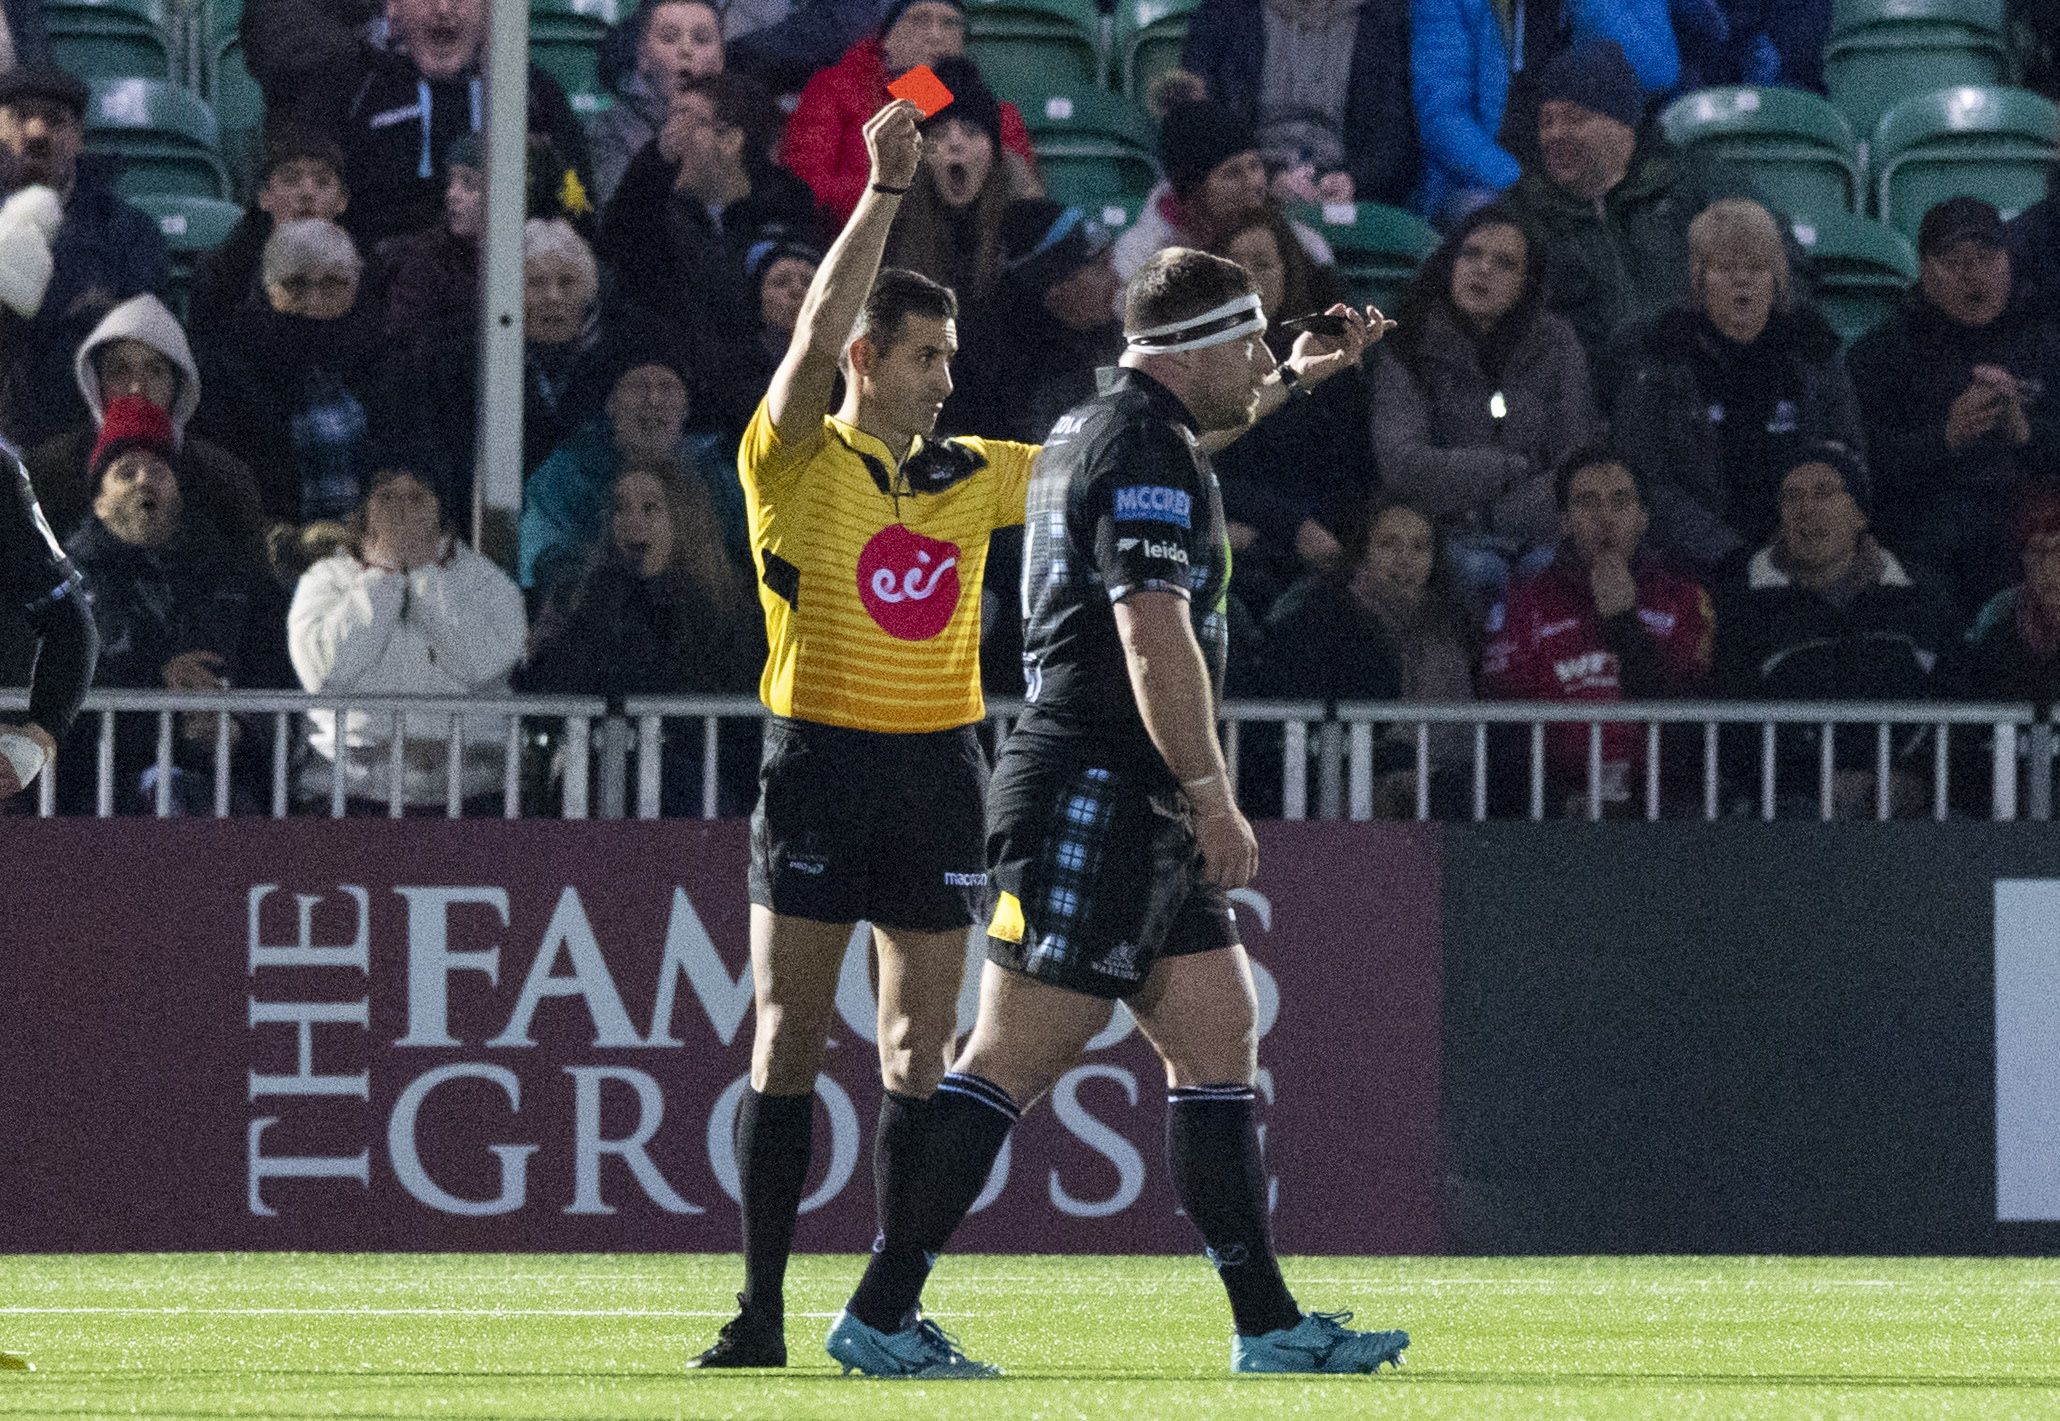 Referee Frank Murphy s ends off Alex Allan in last weekend's game at Scotstoun.